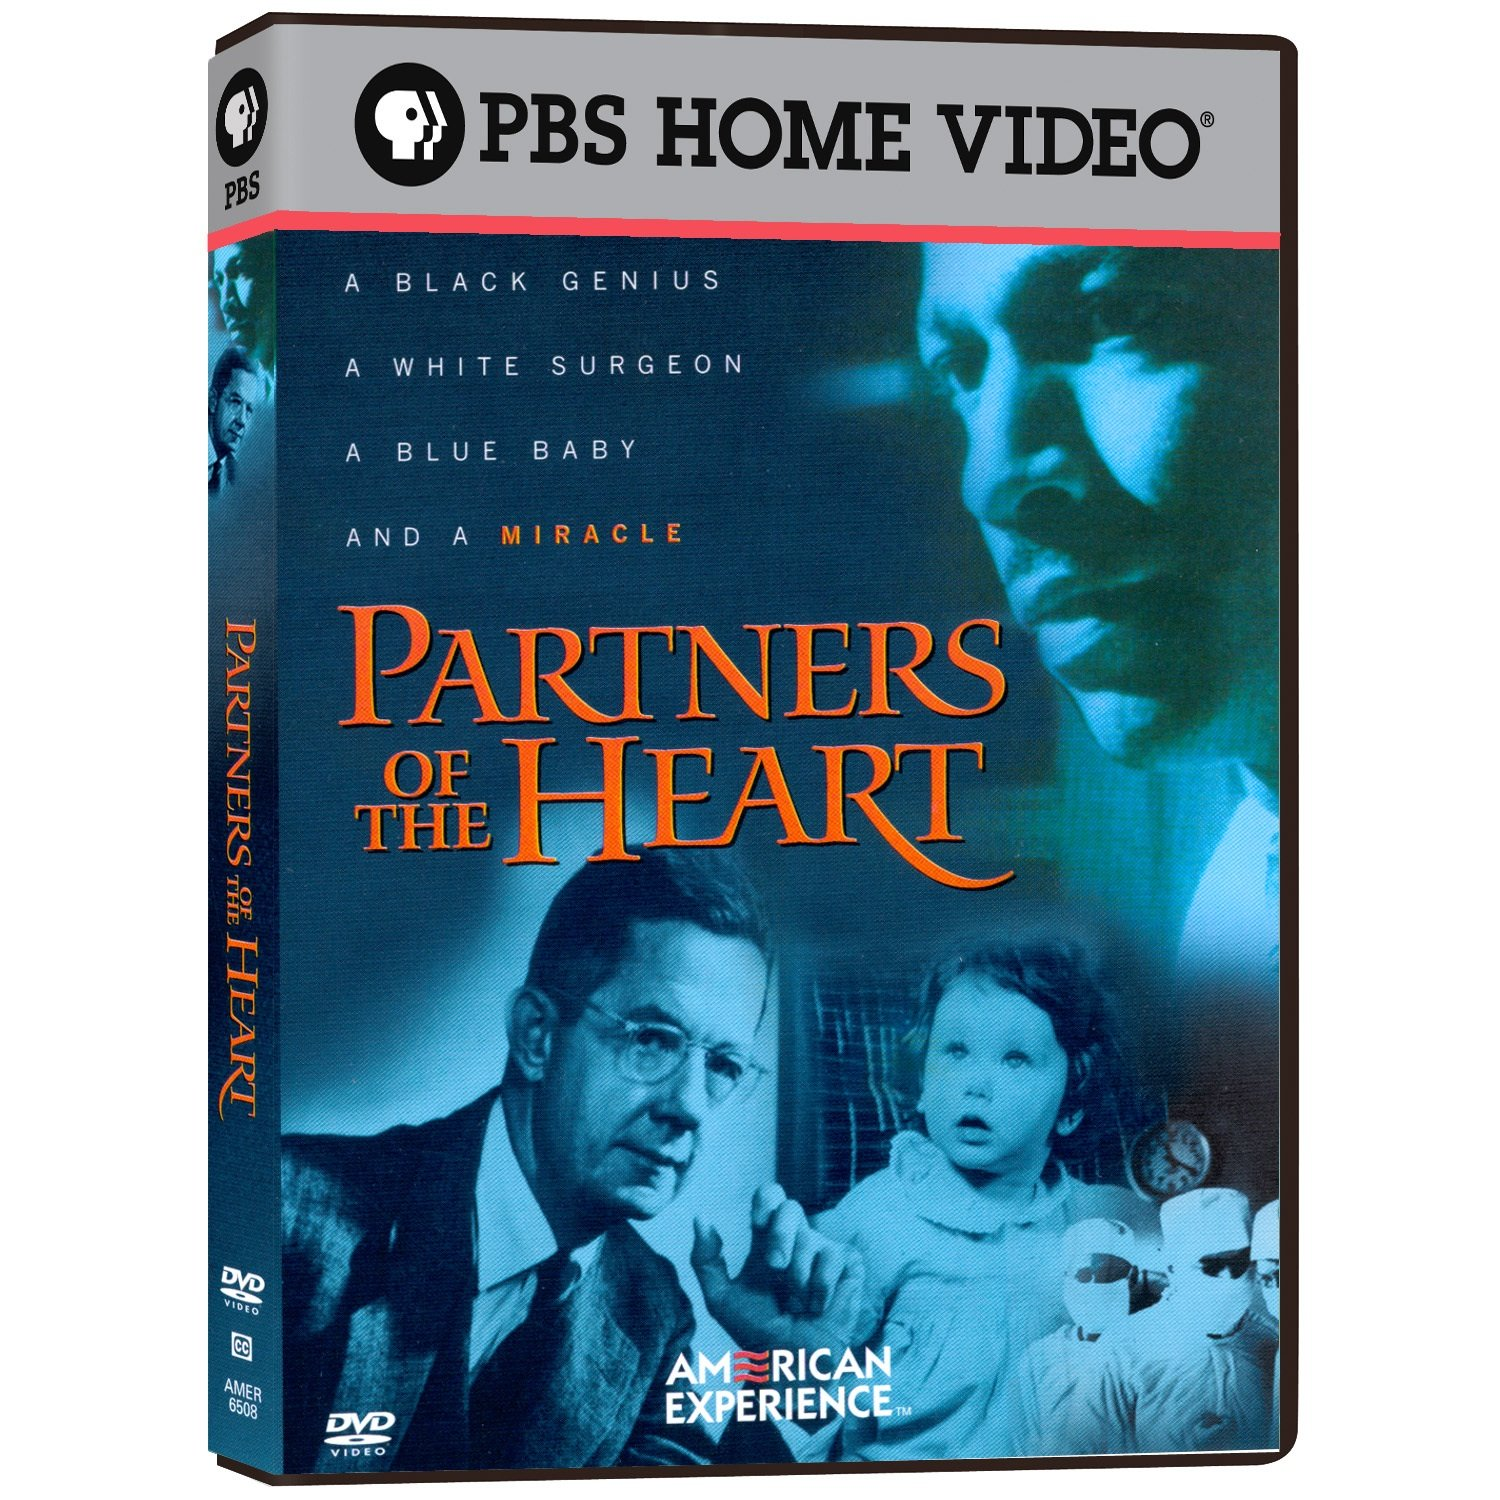 American Experience - Partners Of The Heart by Pbs (Direct)